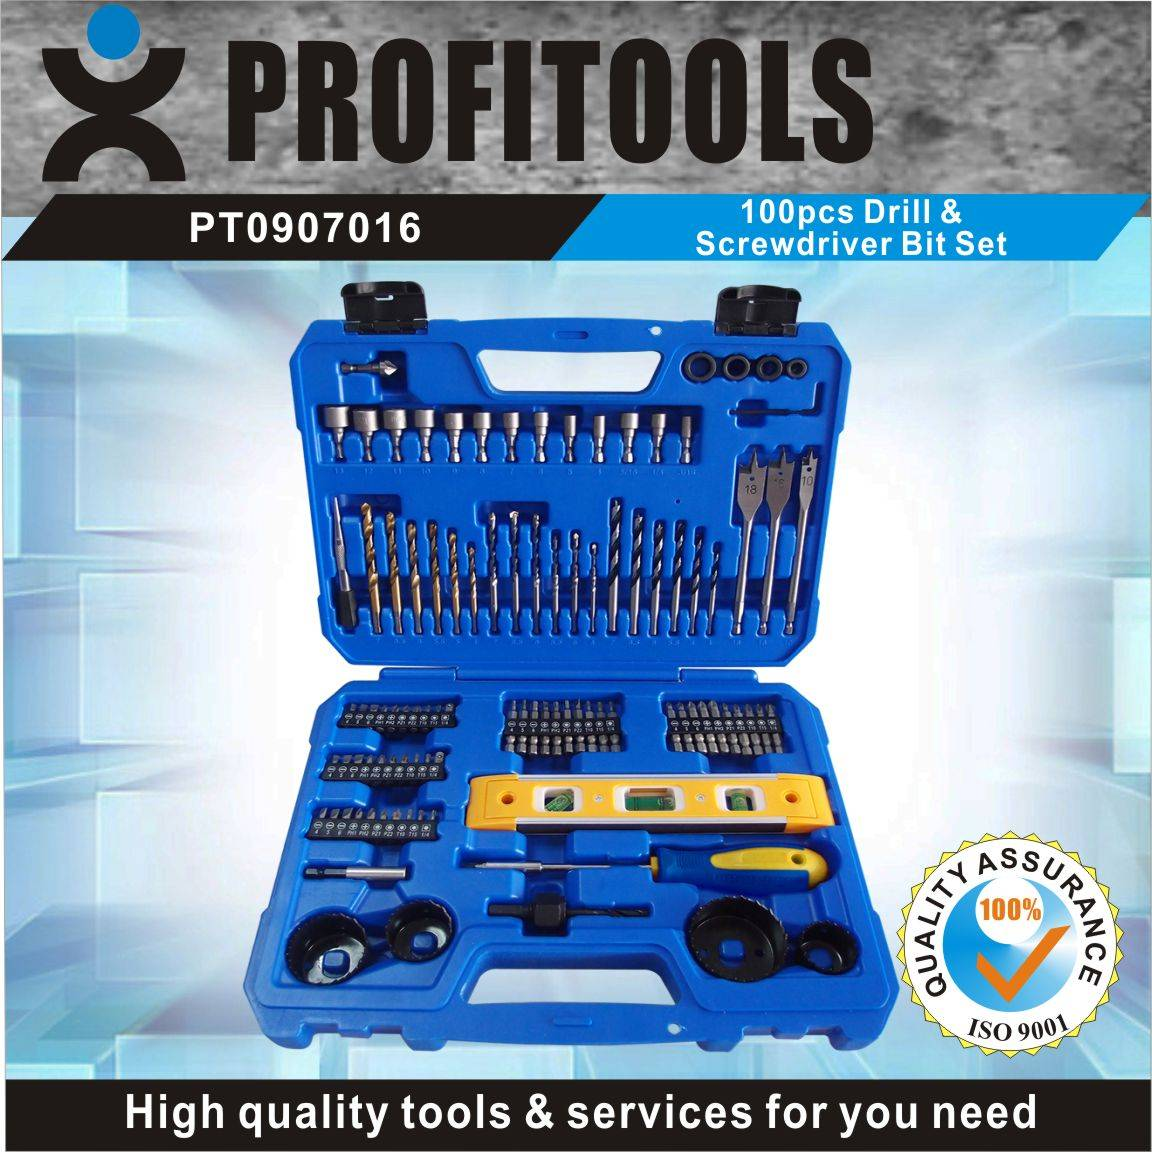 100pcs High Quality Drill and Screwdriver Bit set